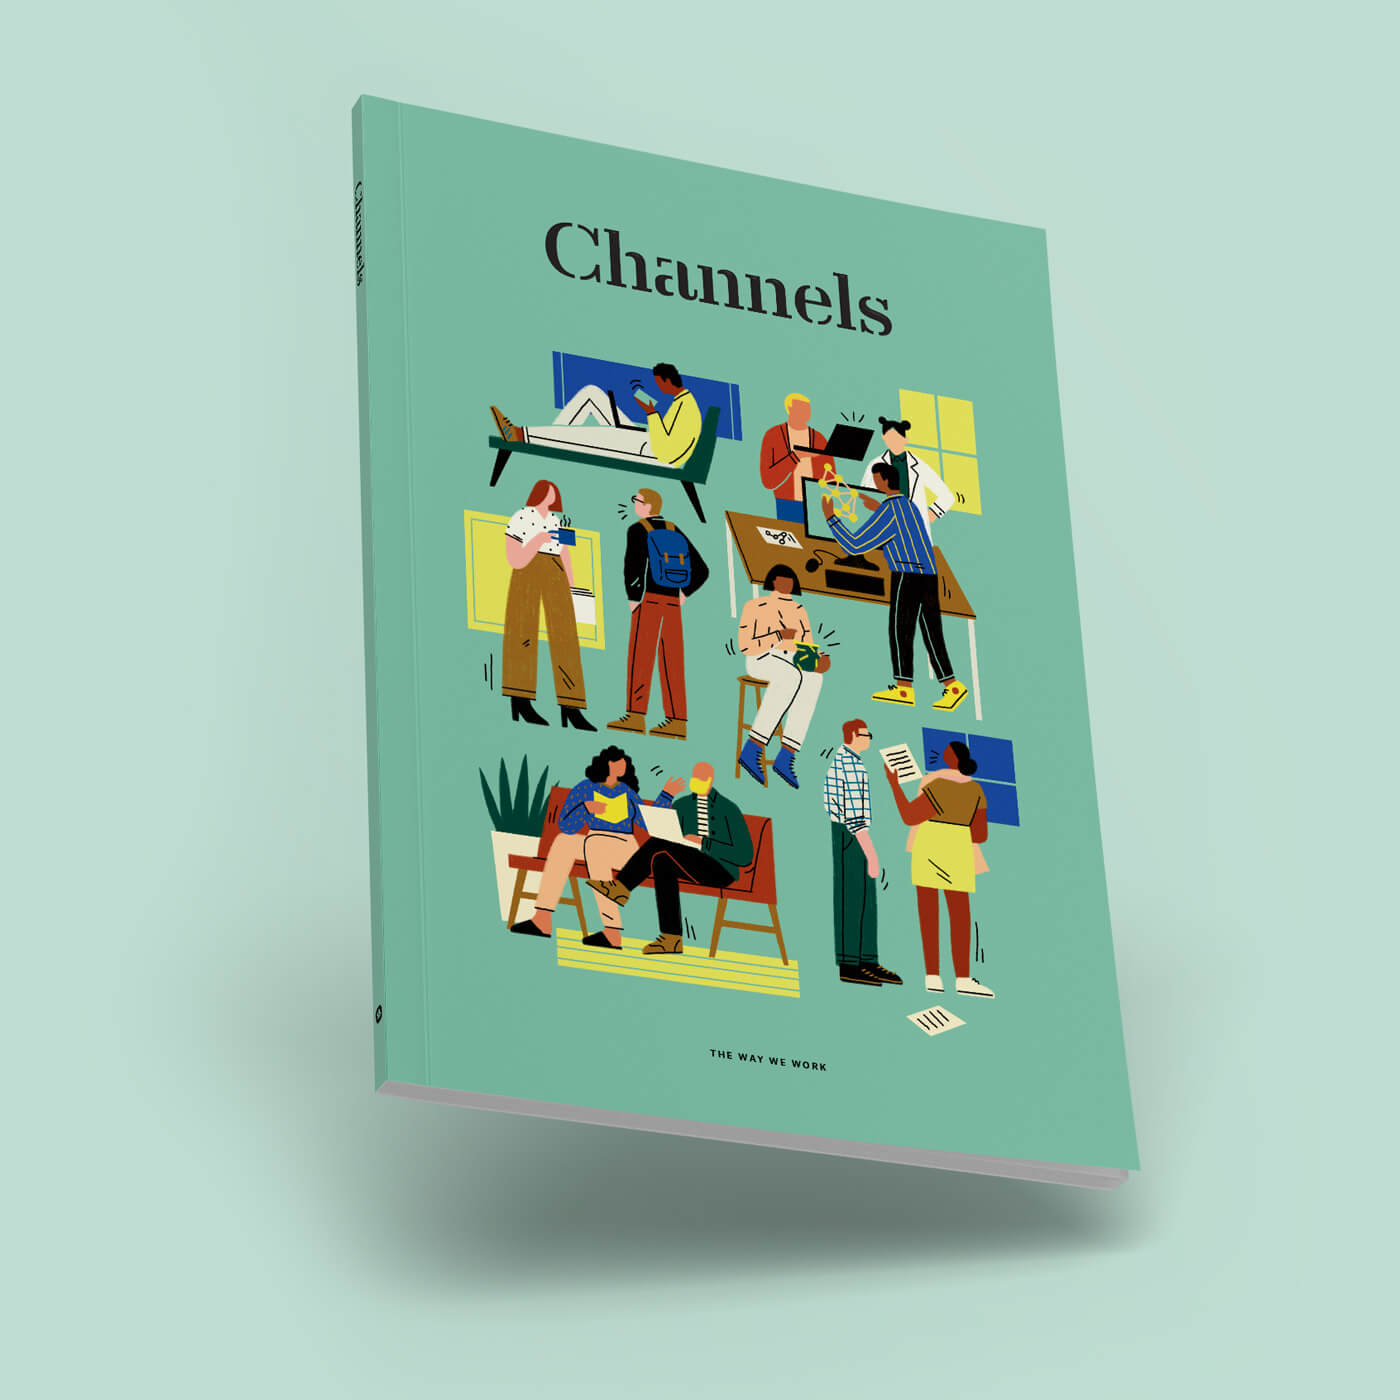 Channels - A magazine from Slack that explores how the modern workplace is evolving.Art Direction, DesignView Project →